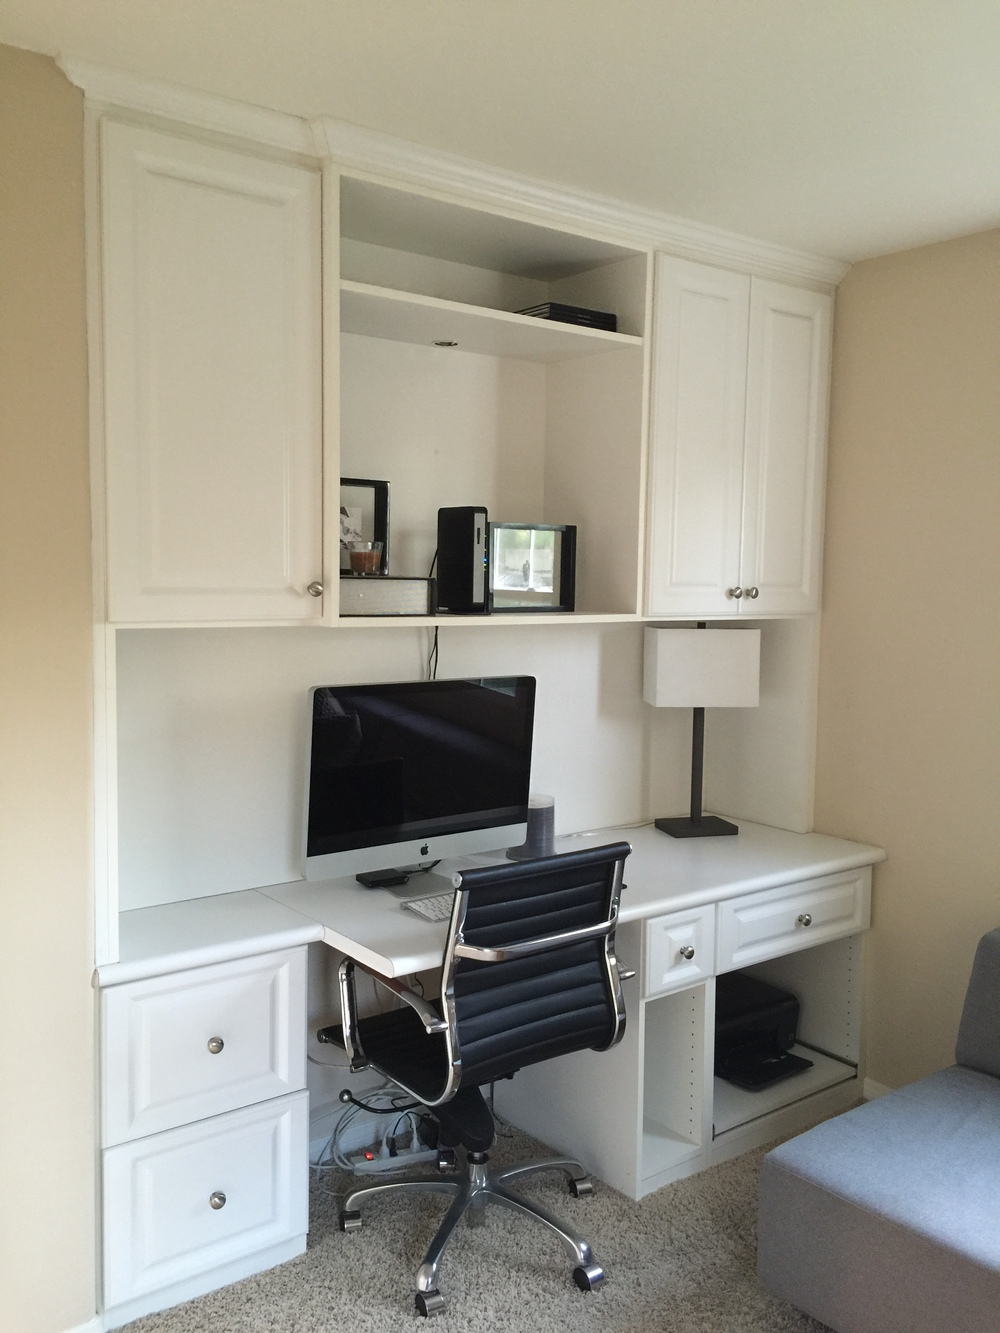 The built-in desk in the second bedroom